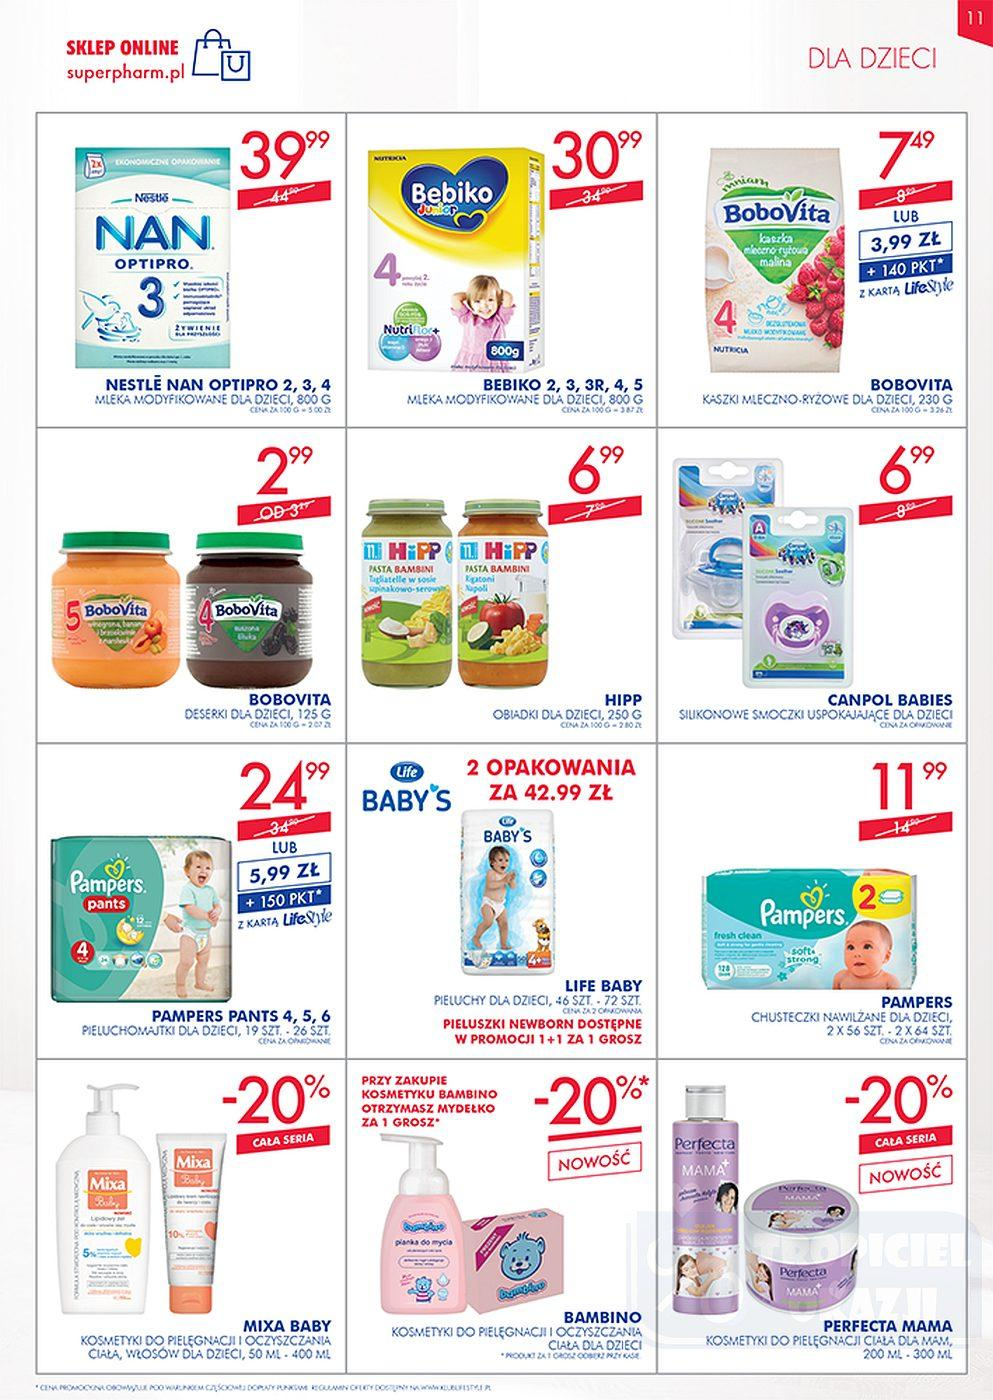 Gazetka promocyjna Superpharm do 10/10/2018 str.10